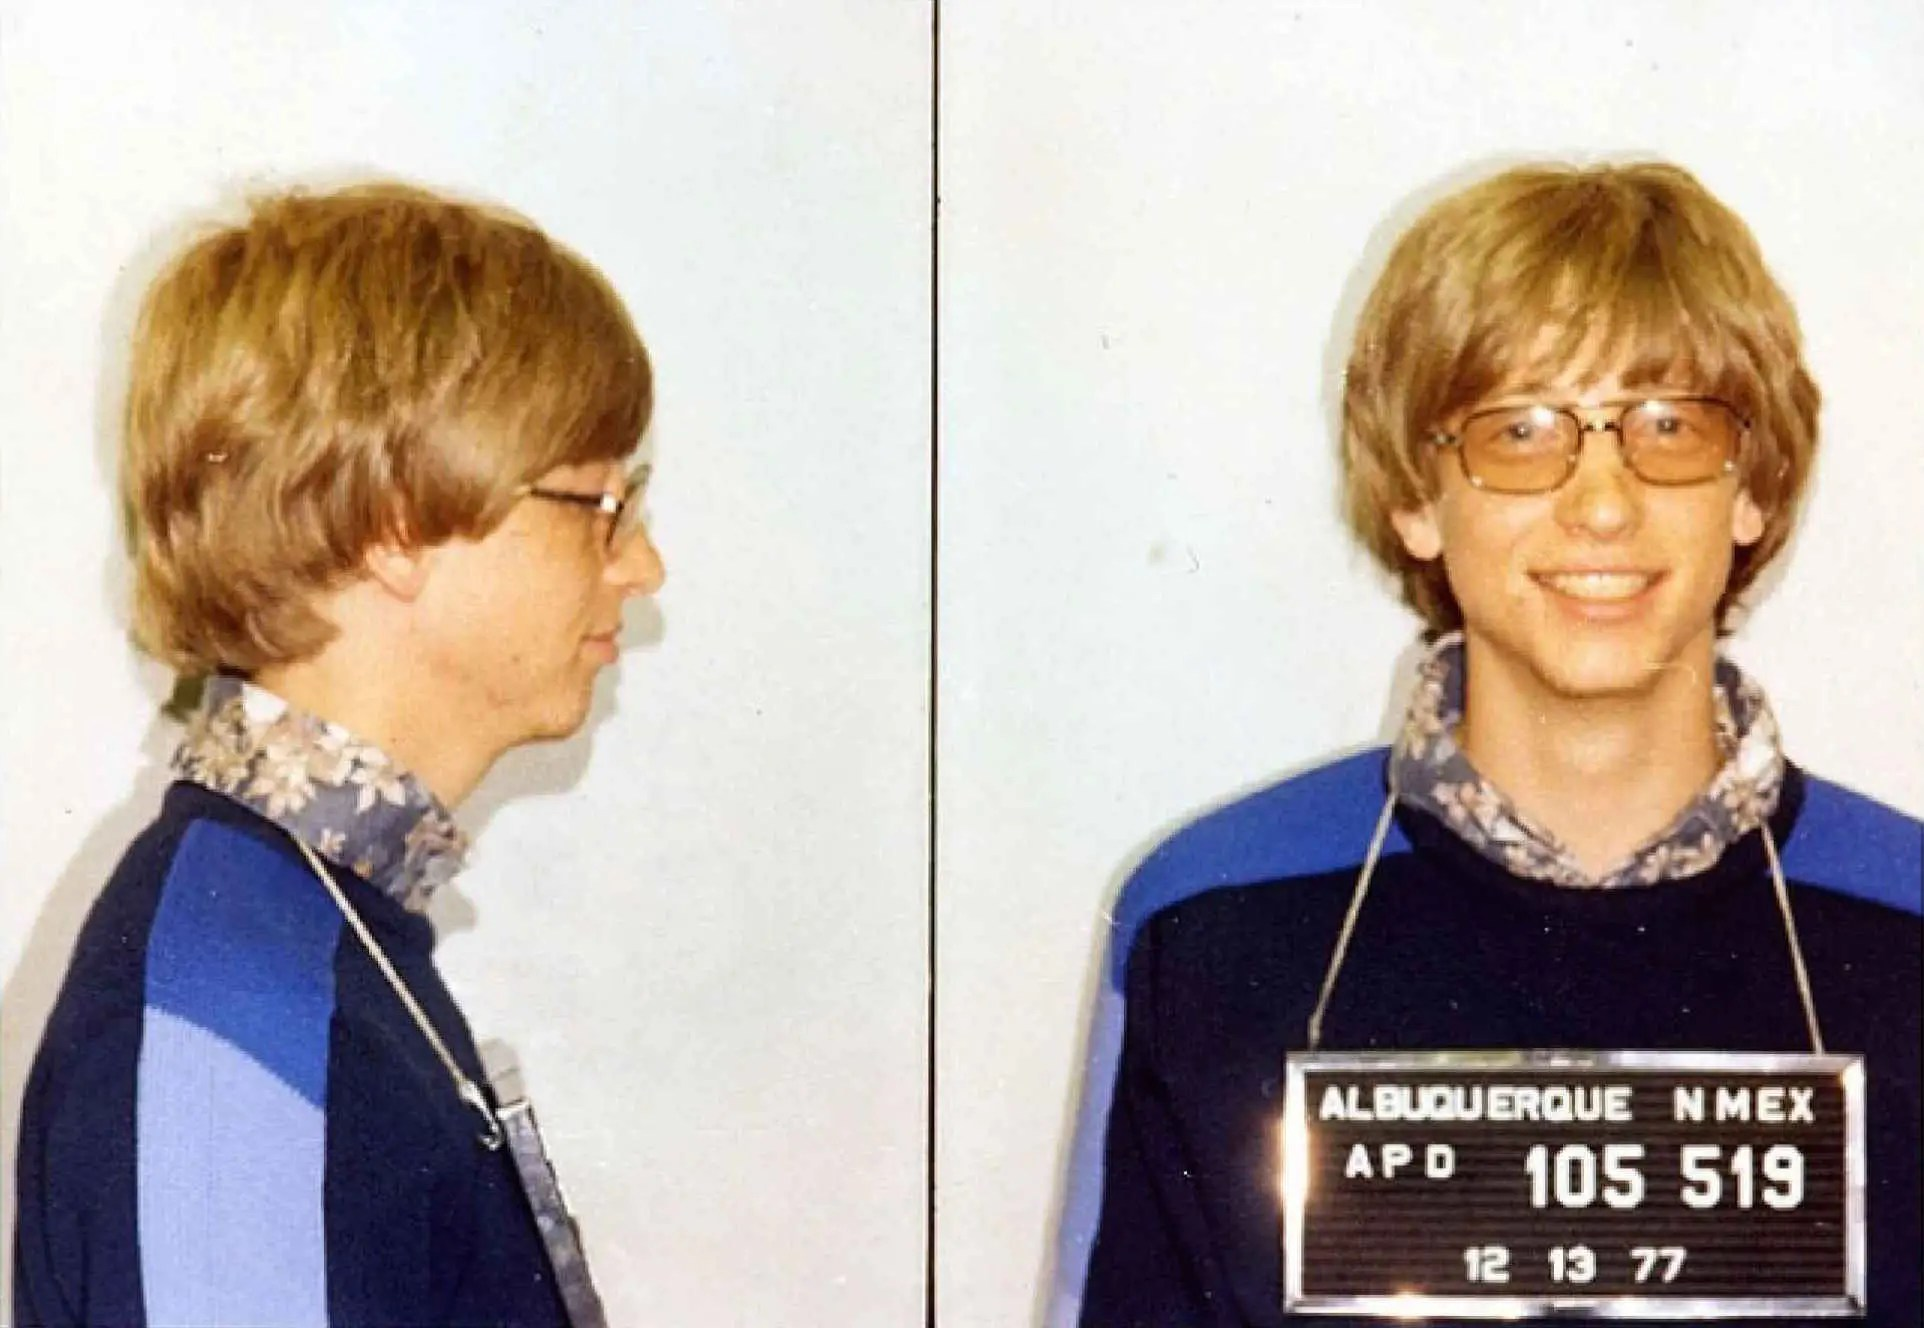 Two years after he dropped out of Harvard, Gates was arrested in New Mexico. He was driving without a license and ran a red light.